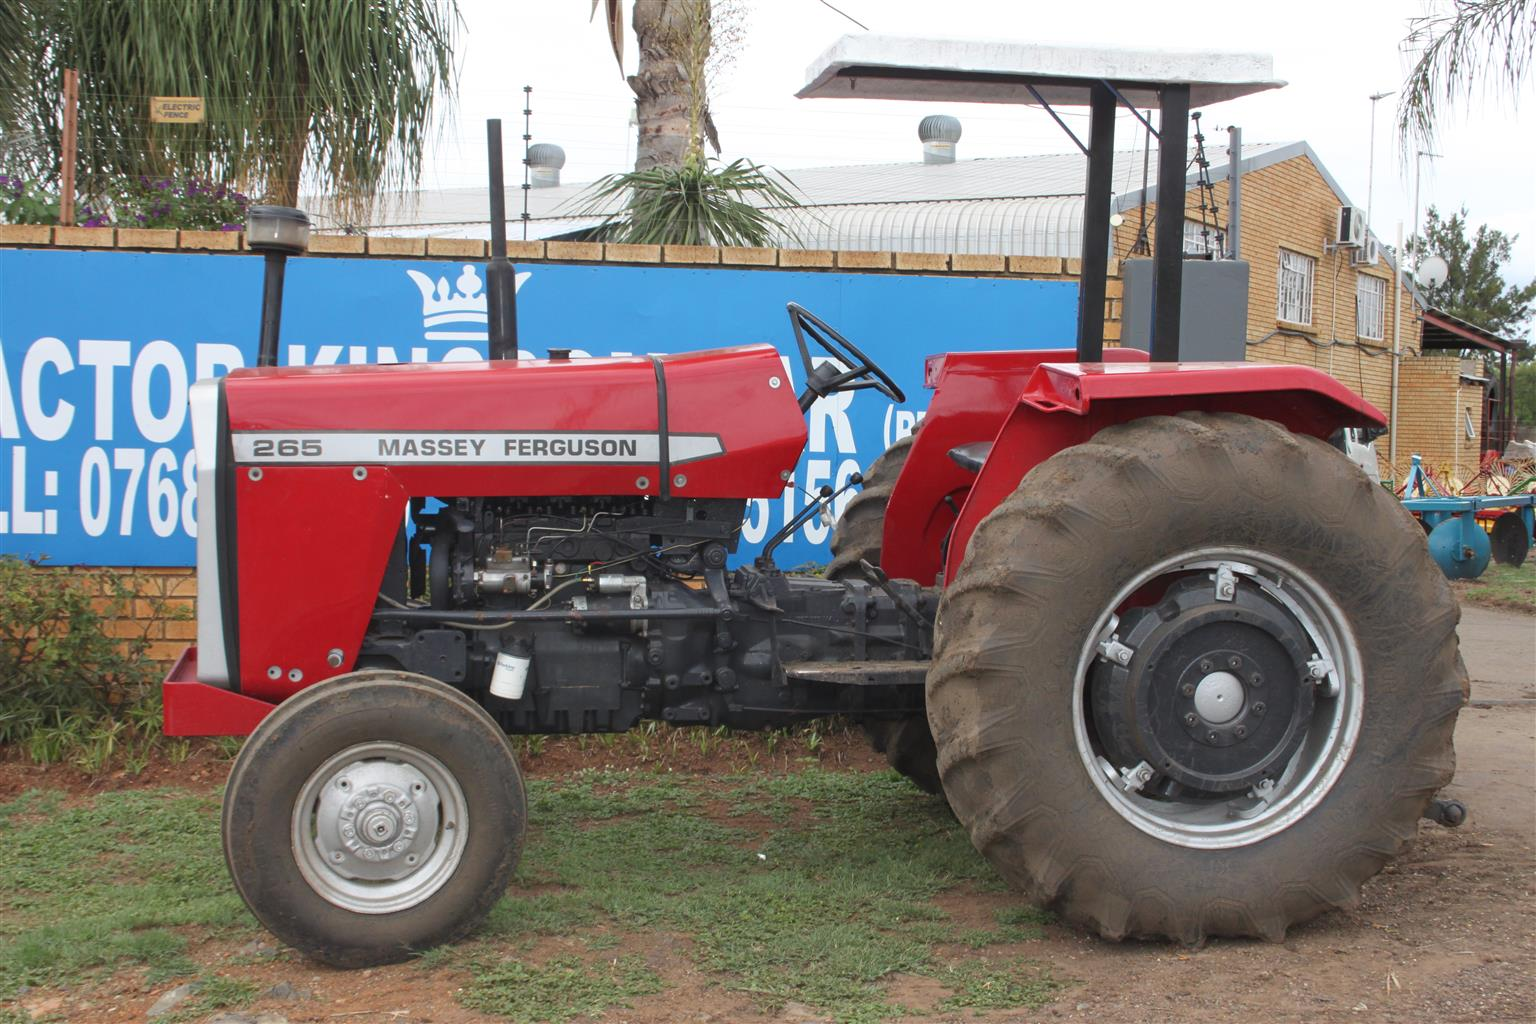 Massey Ferguson 265 Tractor Refurbished and Resprayed